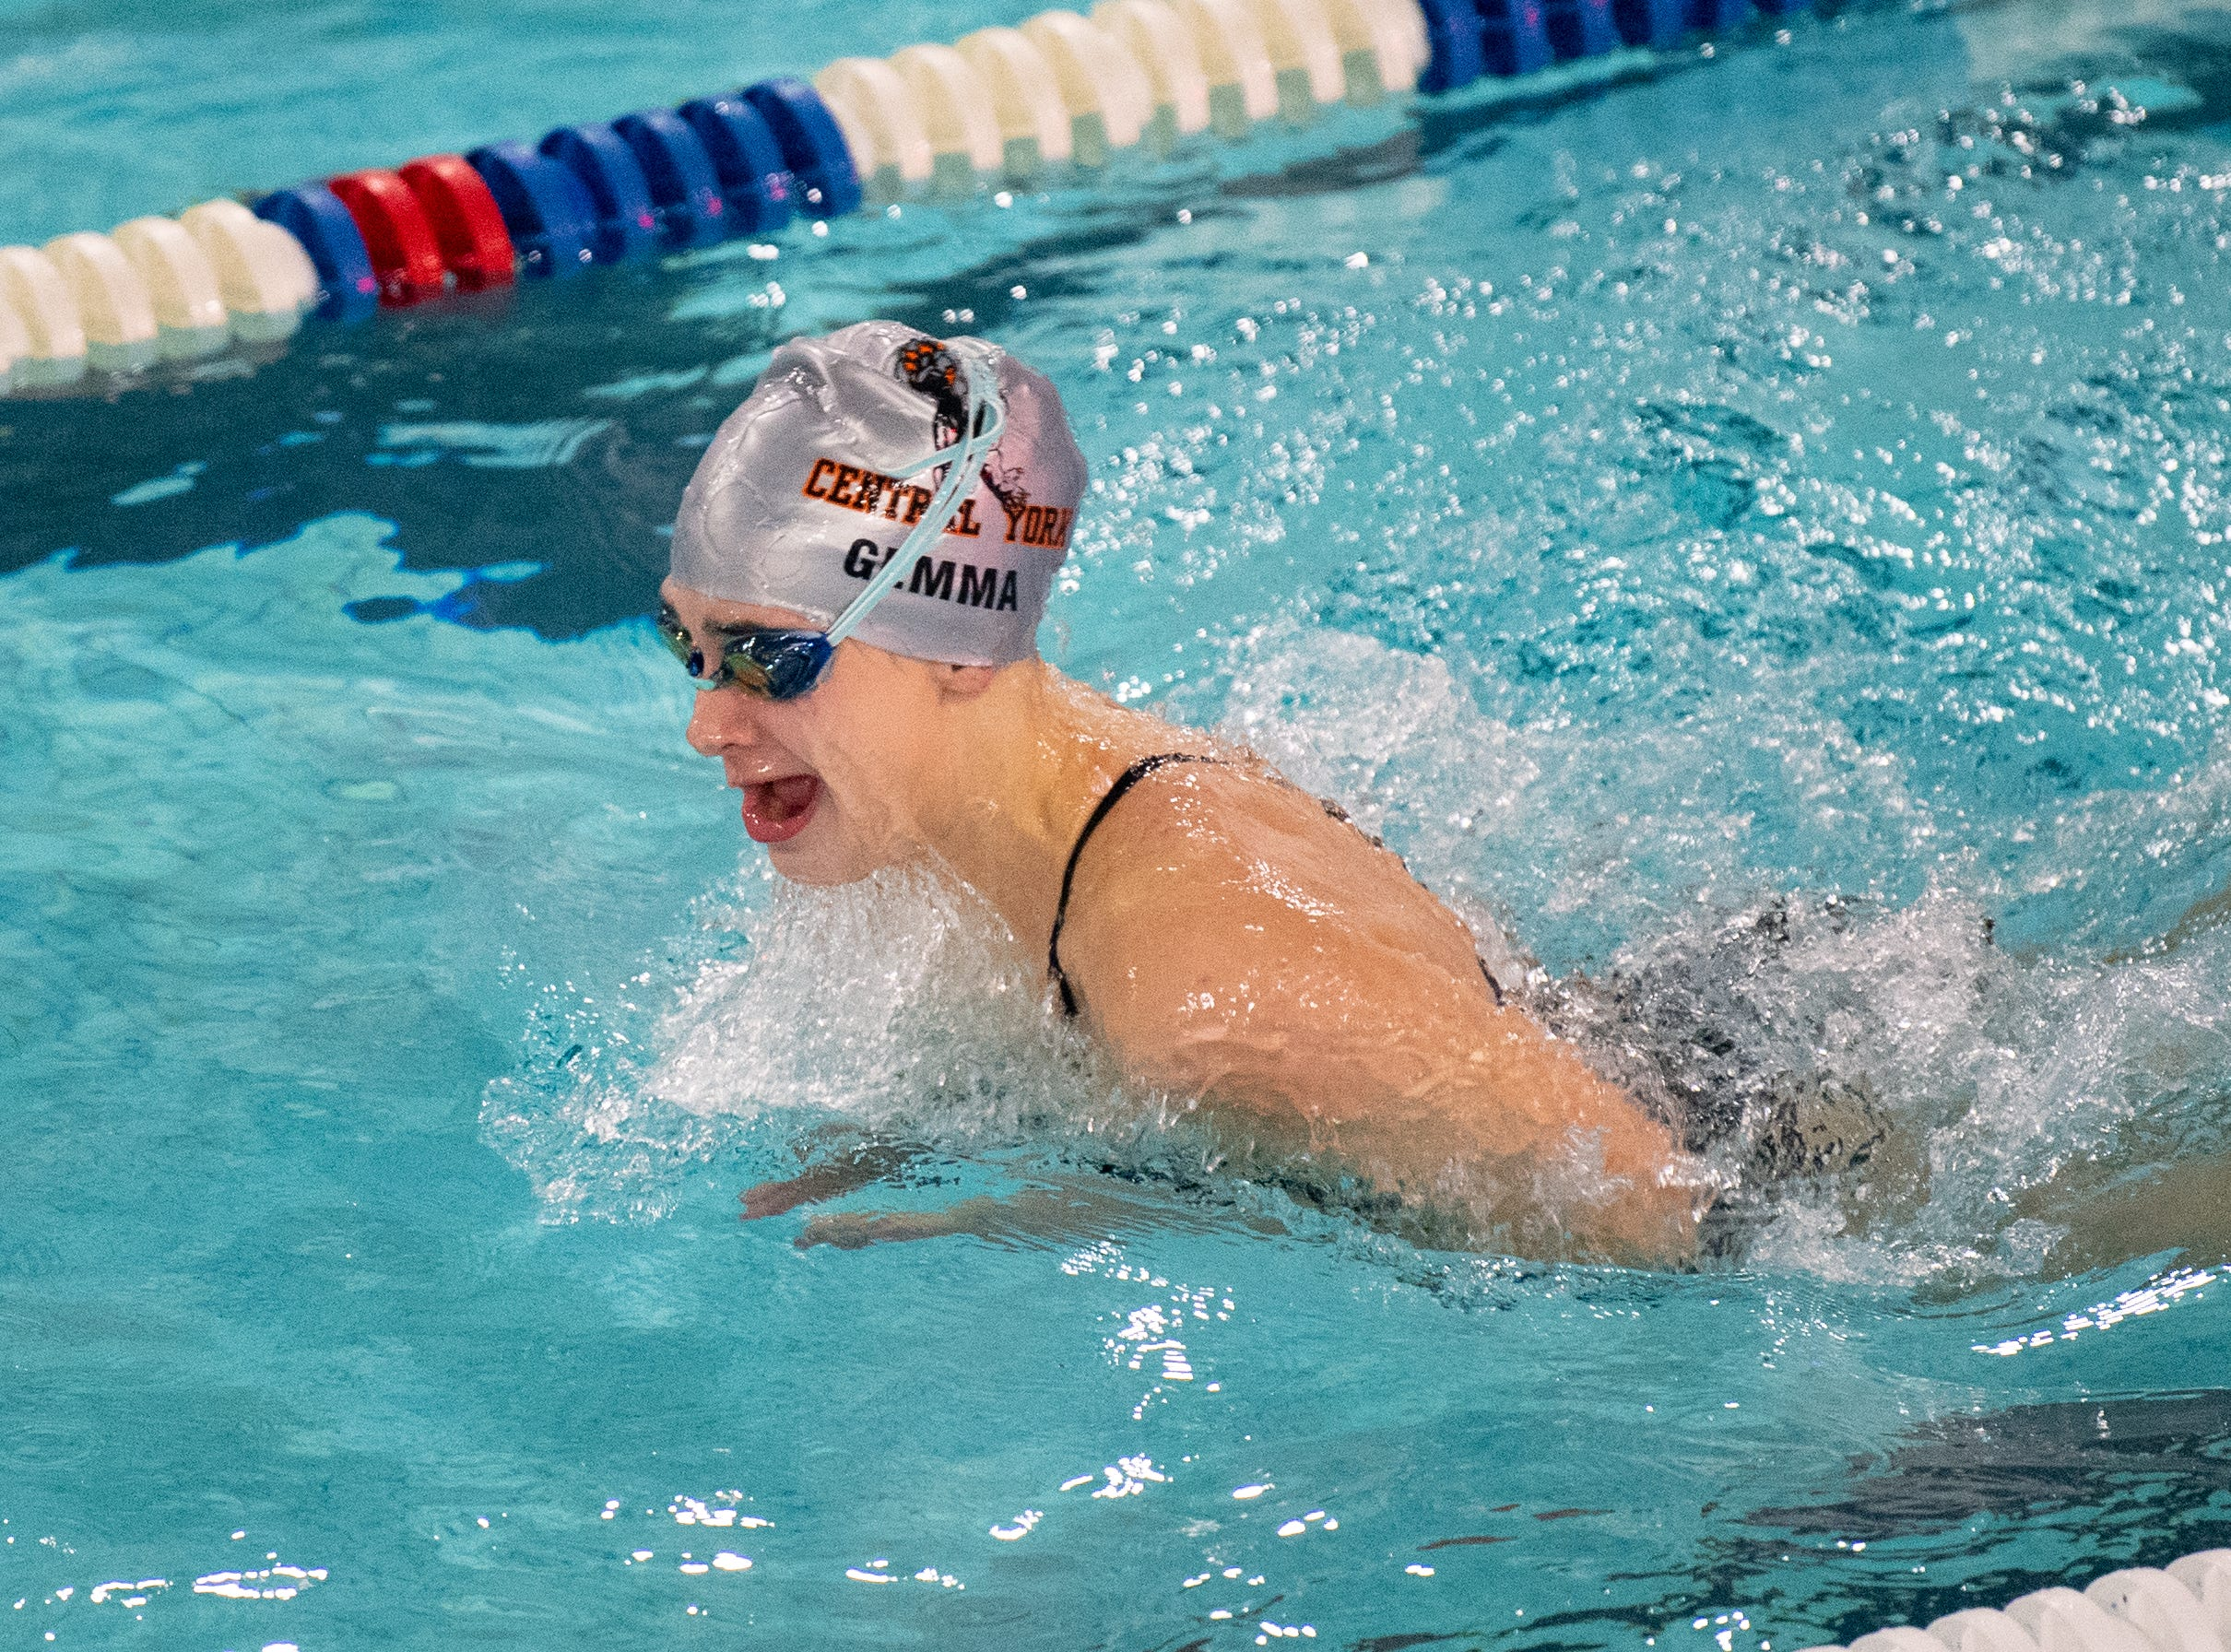 Ava Gemma does the breaststroke during the boys' and girls' swim meet between Dallastown and Central York at Dallastown Area High School, January 10, 2019. The Panthers defeated the Wildcats 93 to 77 and the Lady Panthers defeated the Lady Wildcats 96 to 74.